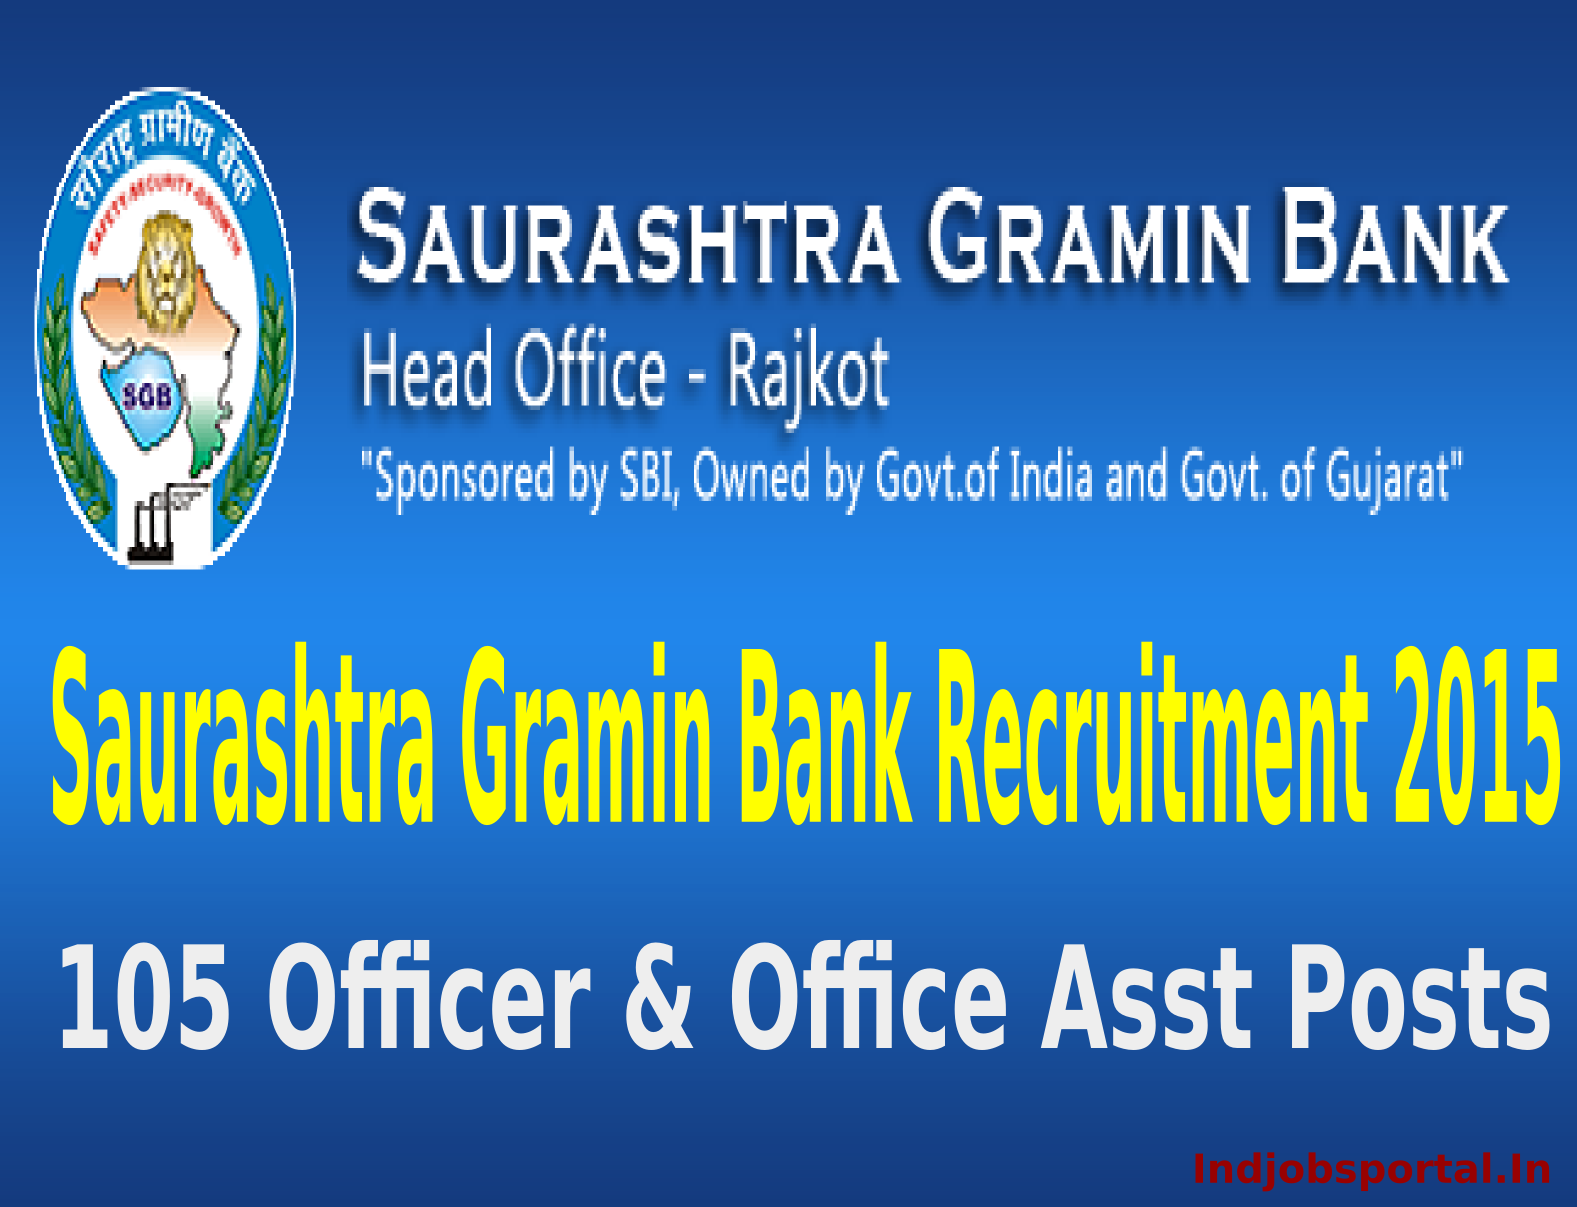 Saurashtra Gramin Bank Recruitment 2015 For 105 Officer & Office Asst Posts